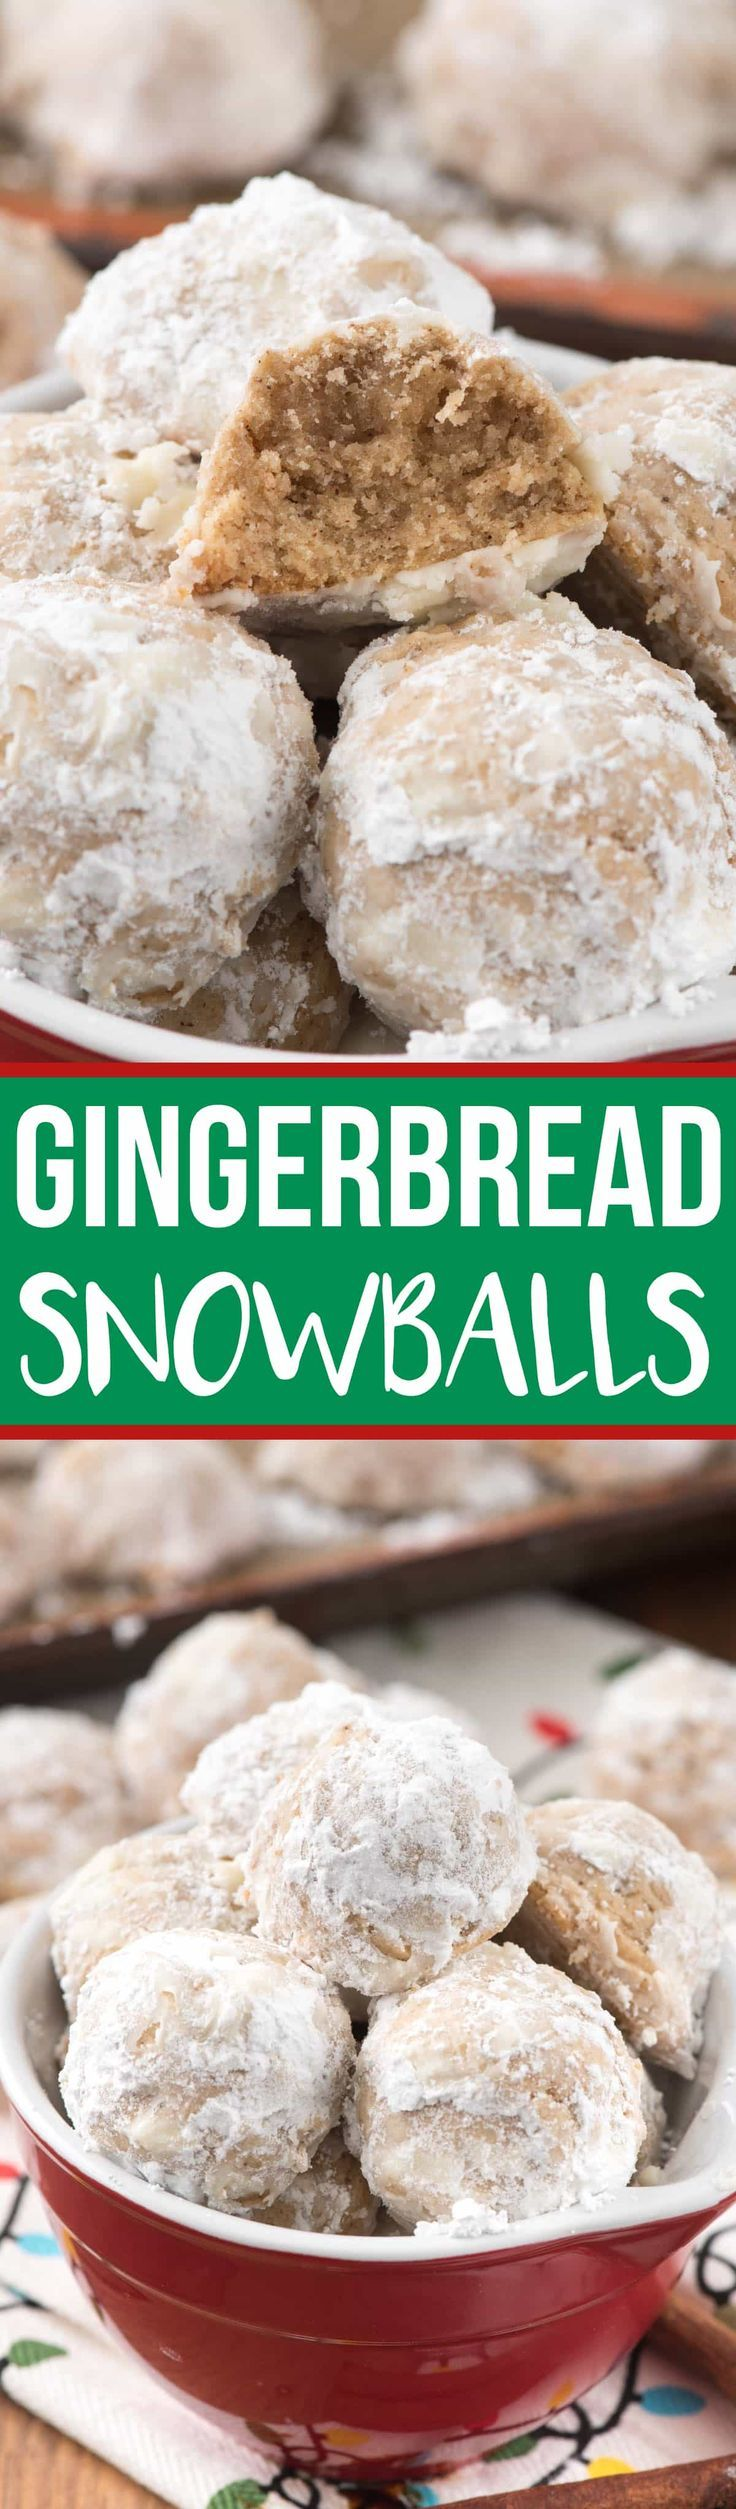 Gingerbread Snowballs are an easy Christmas cookie that combines the best of both family favorite recipes! via @crazyforcrust